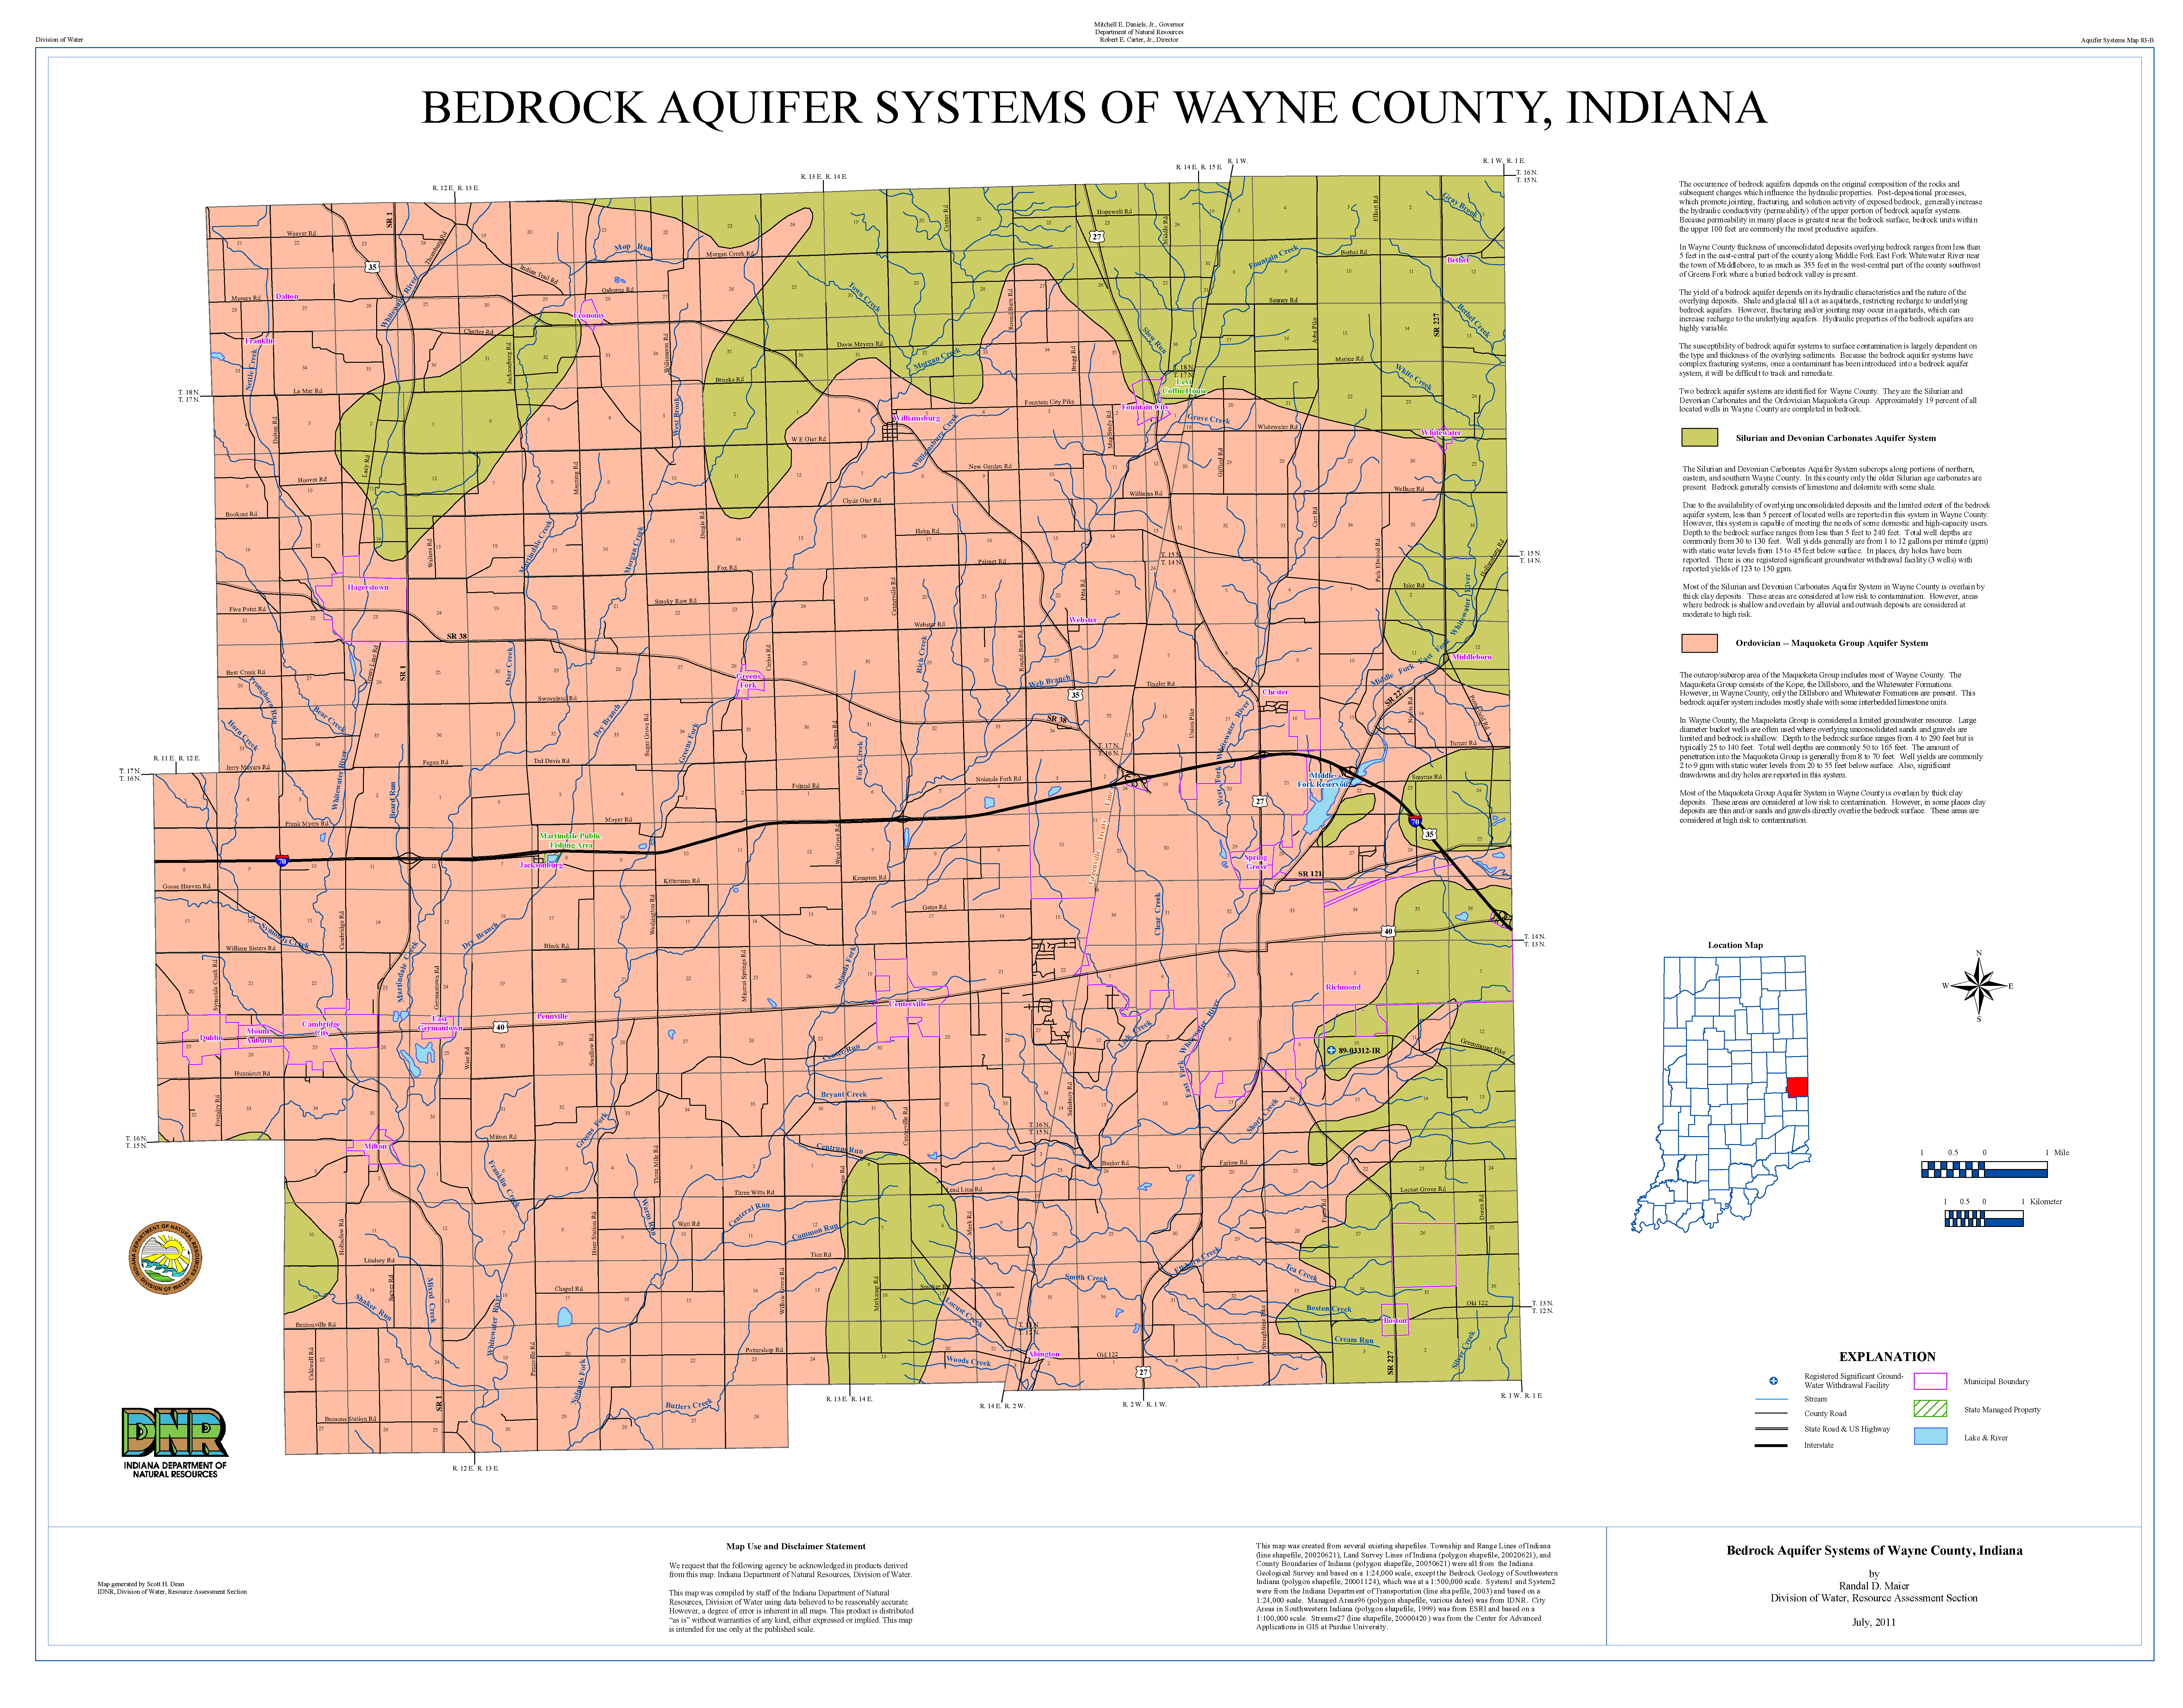 Aquifer Systems Maps 83 A And 83 B Unconsolidated And Bedrock Aquifer Systems Of Wayne County Indiana 2011